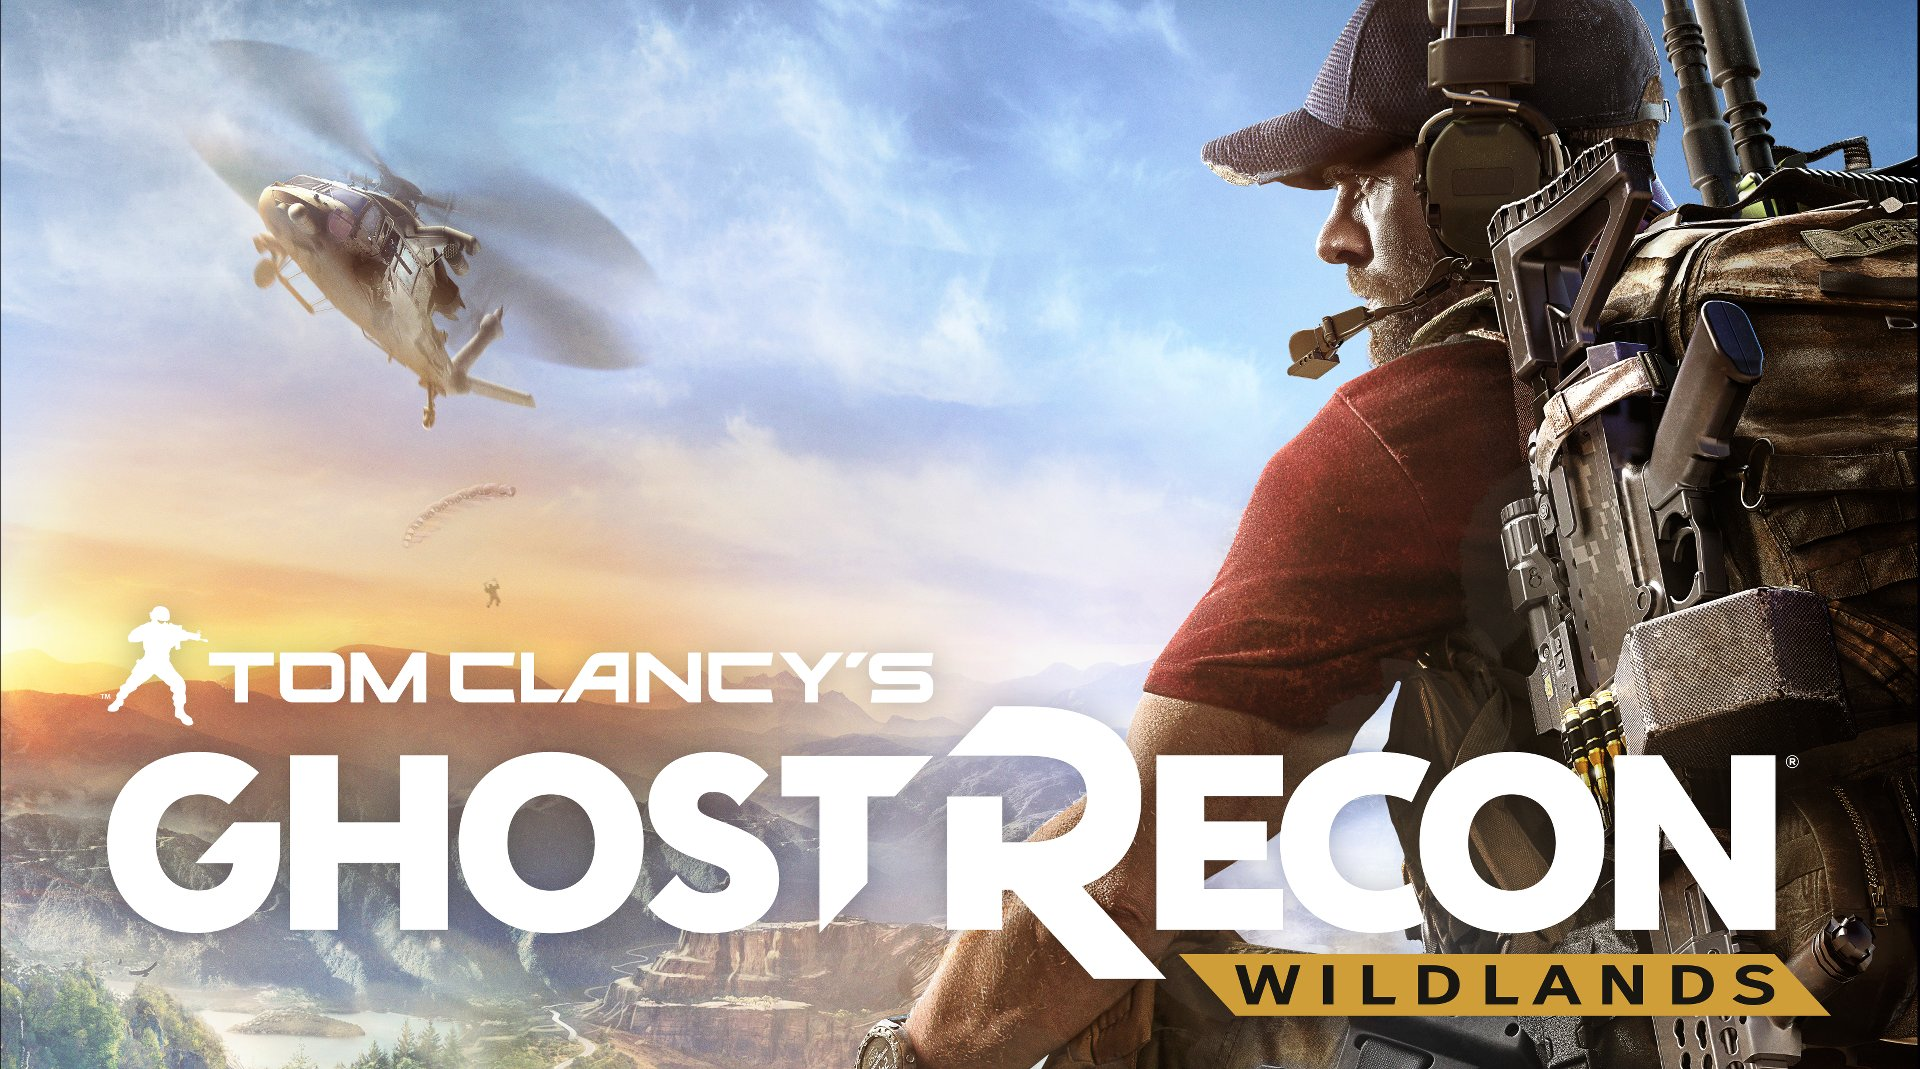 http://www.xboxachievements.com/images/news/Ghost_recon_wildlands_banner.jpg